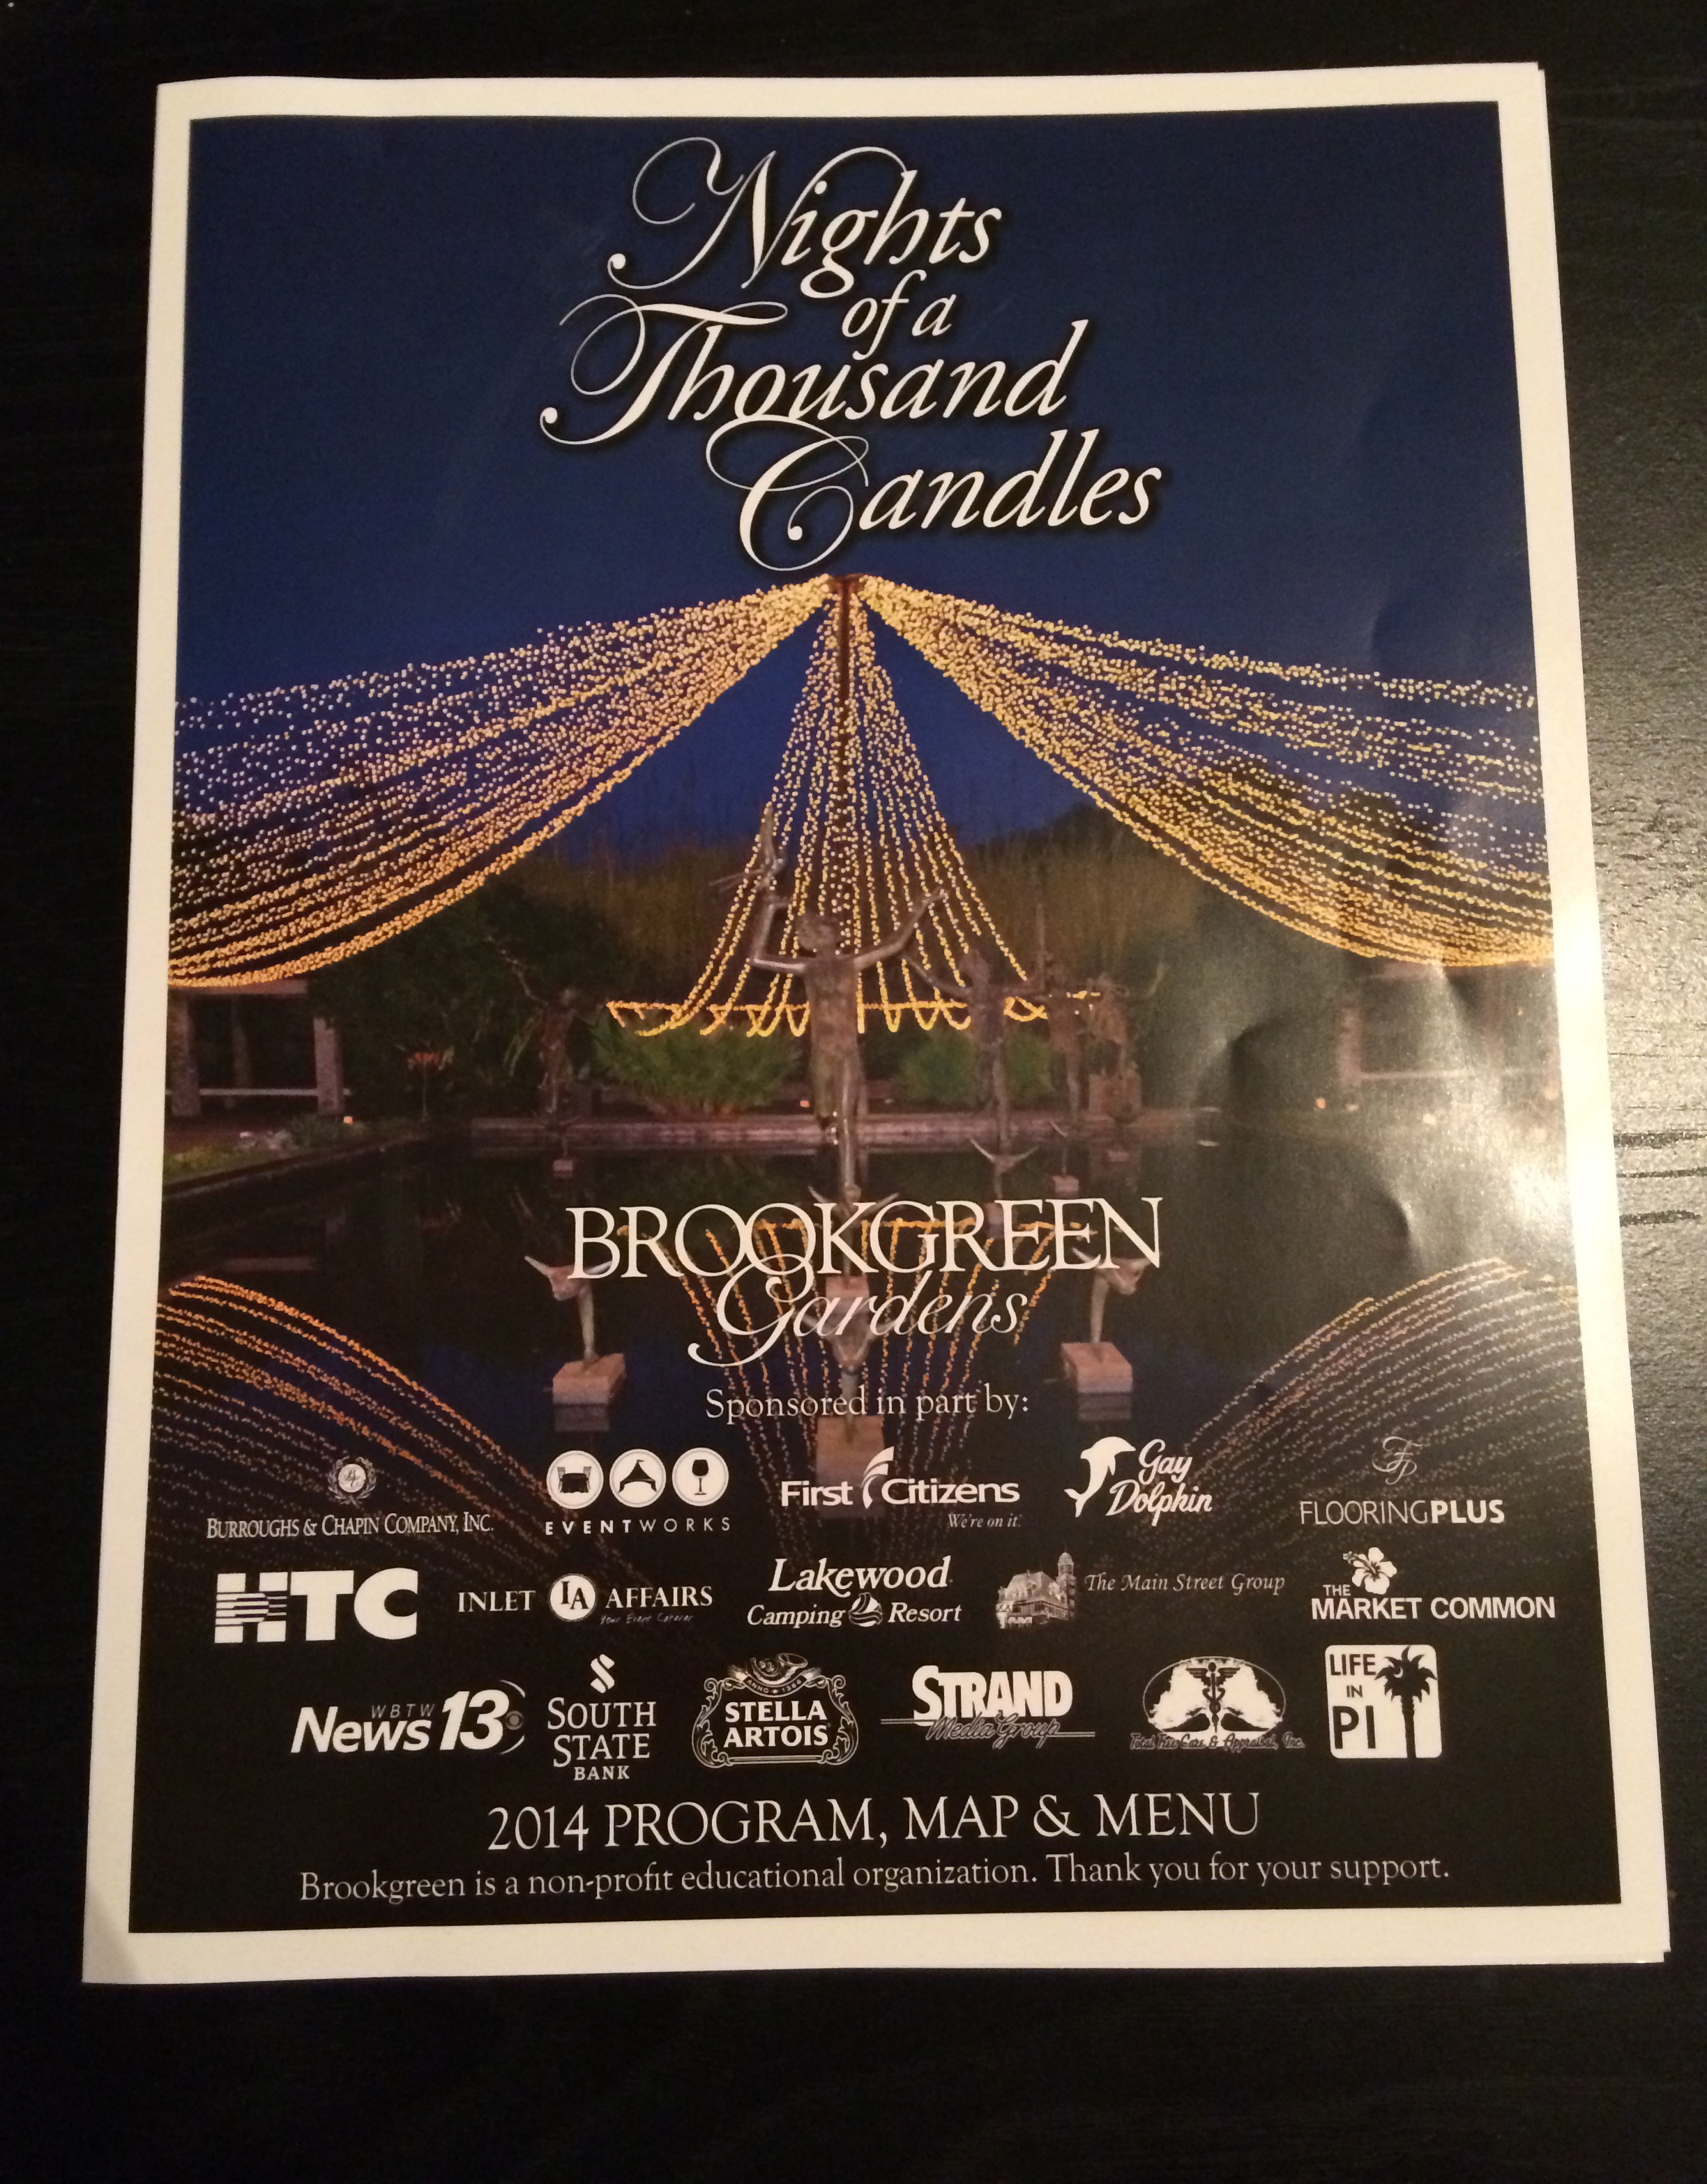 This is the program for Night of a Thousand Candles.